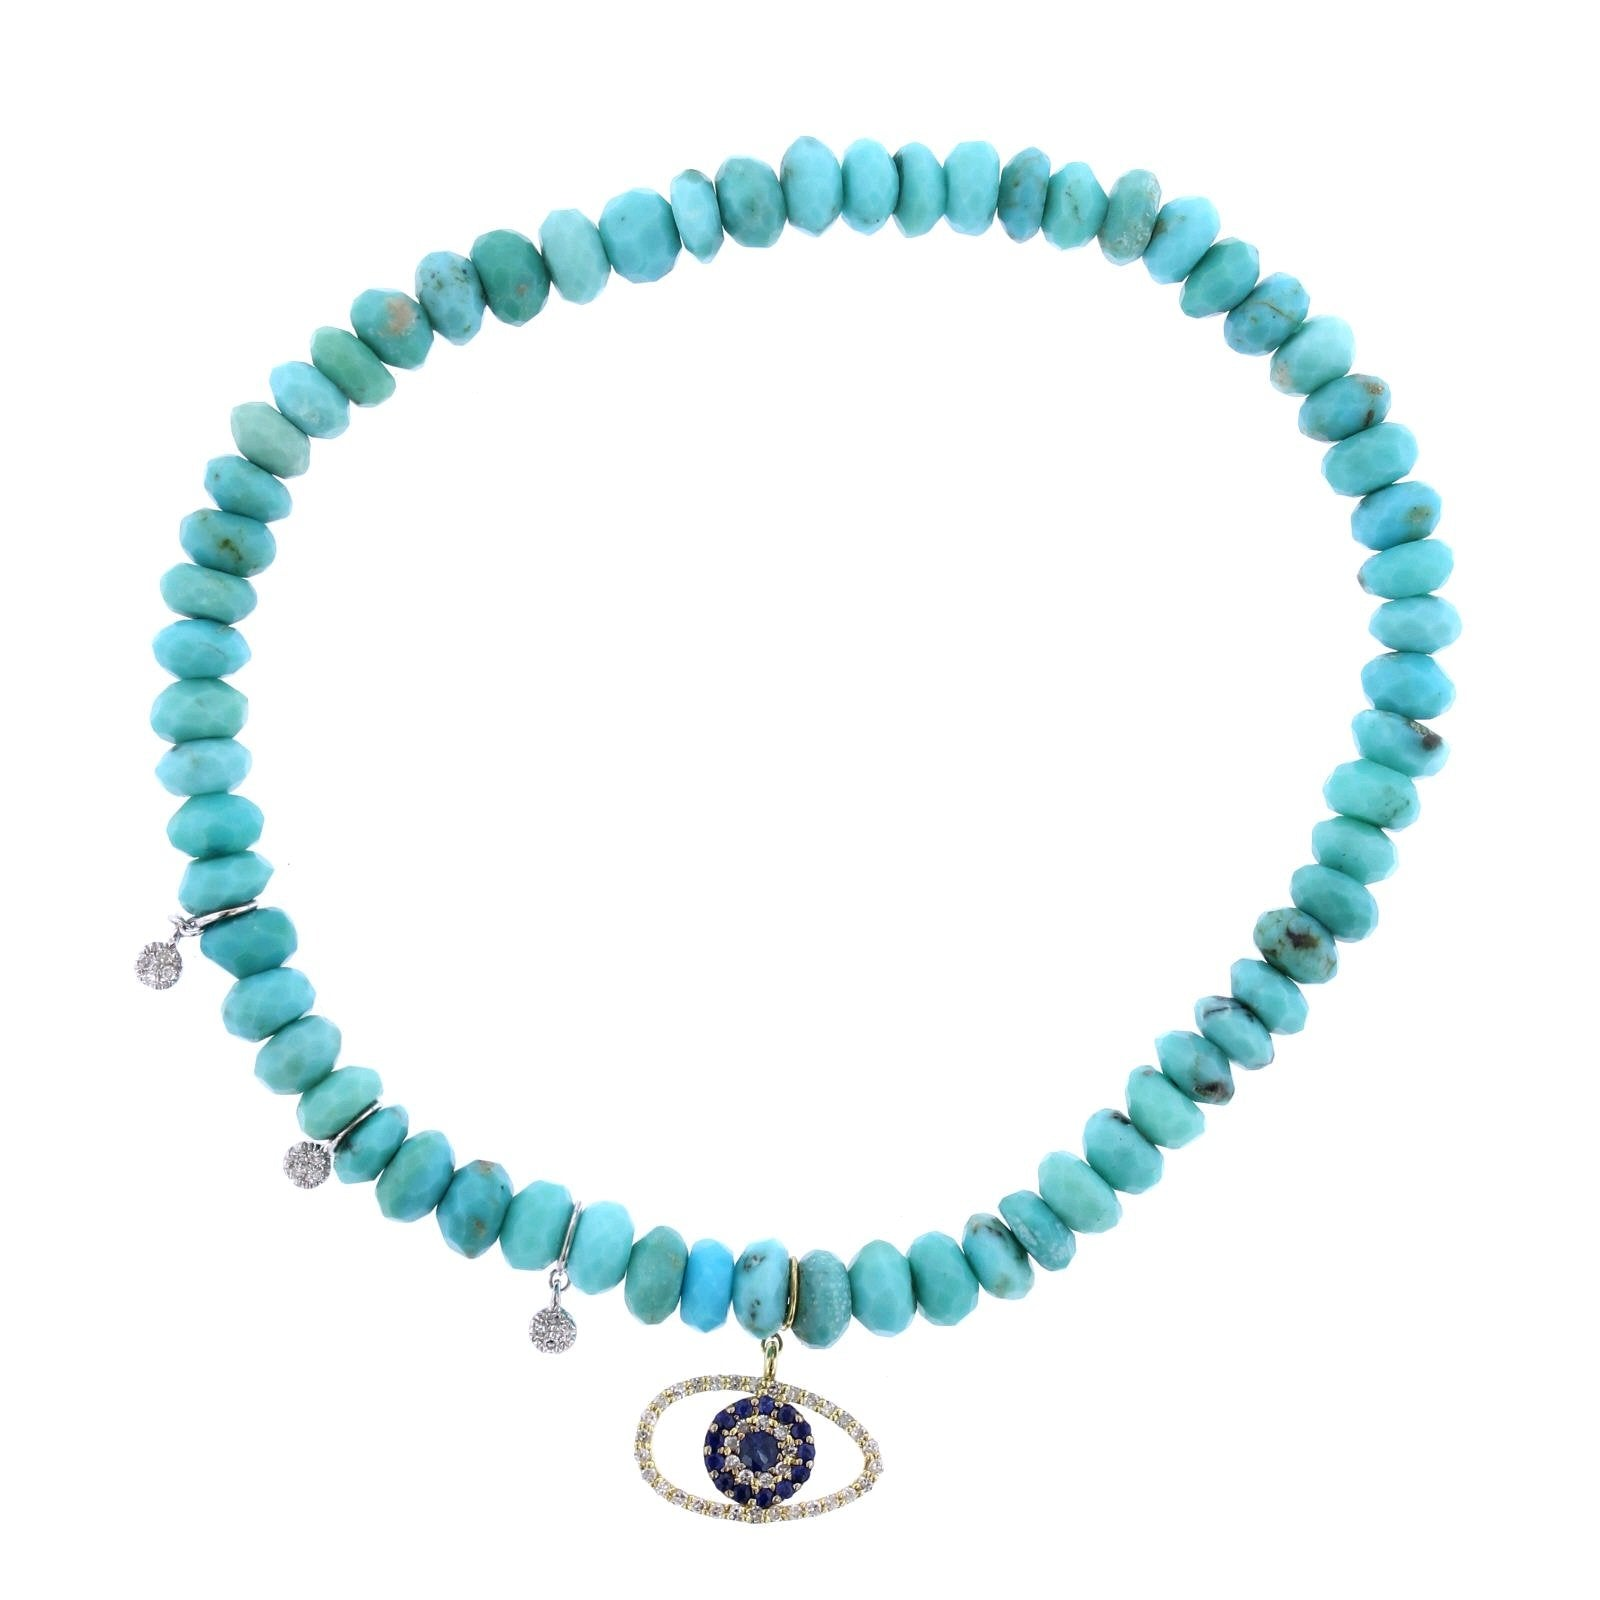 14K Yellow Gold Turquoise Bead Evil Eye Bracelet